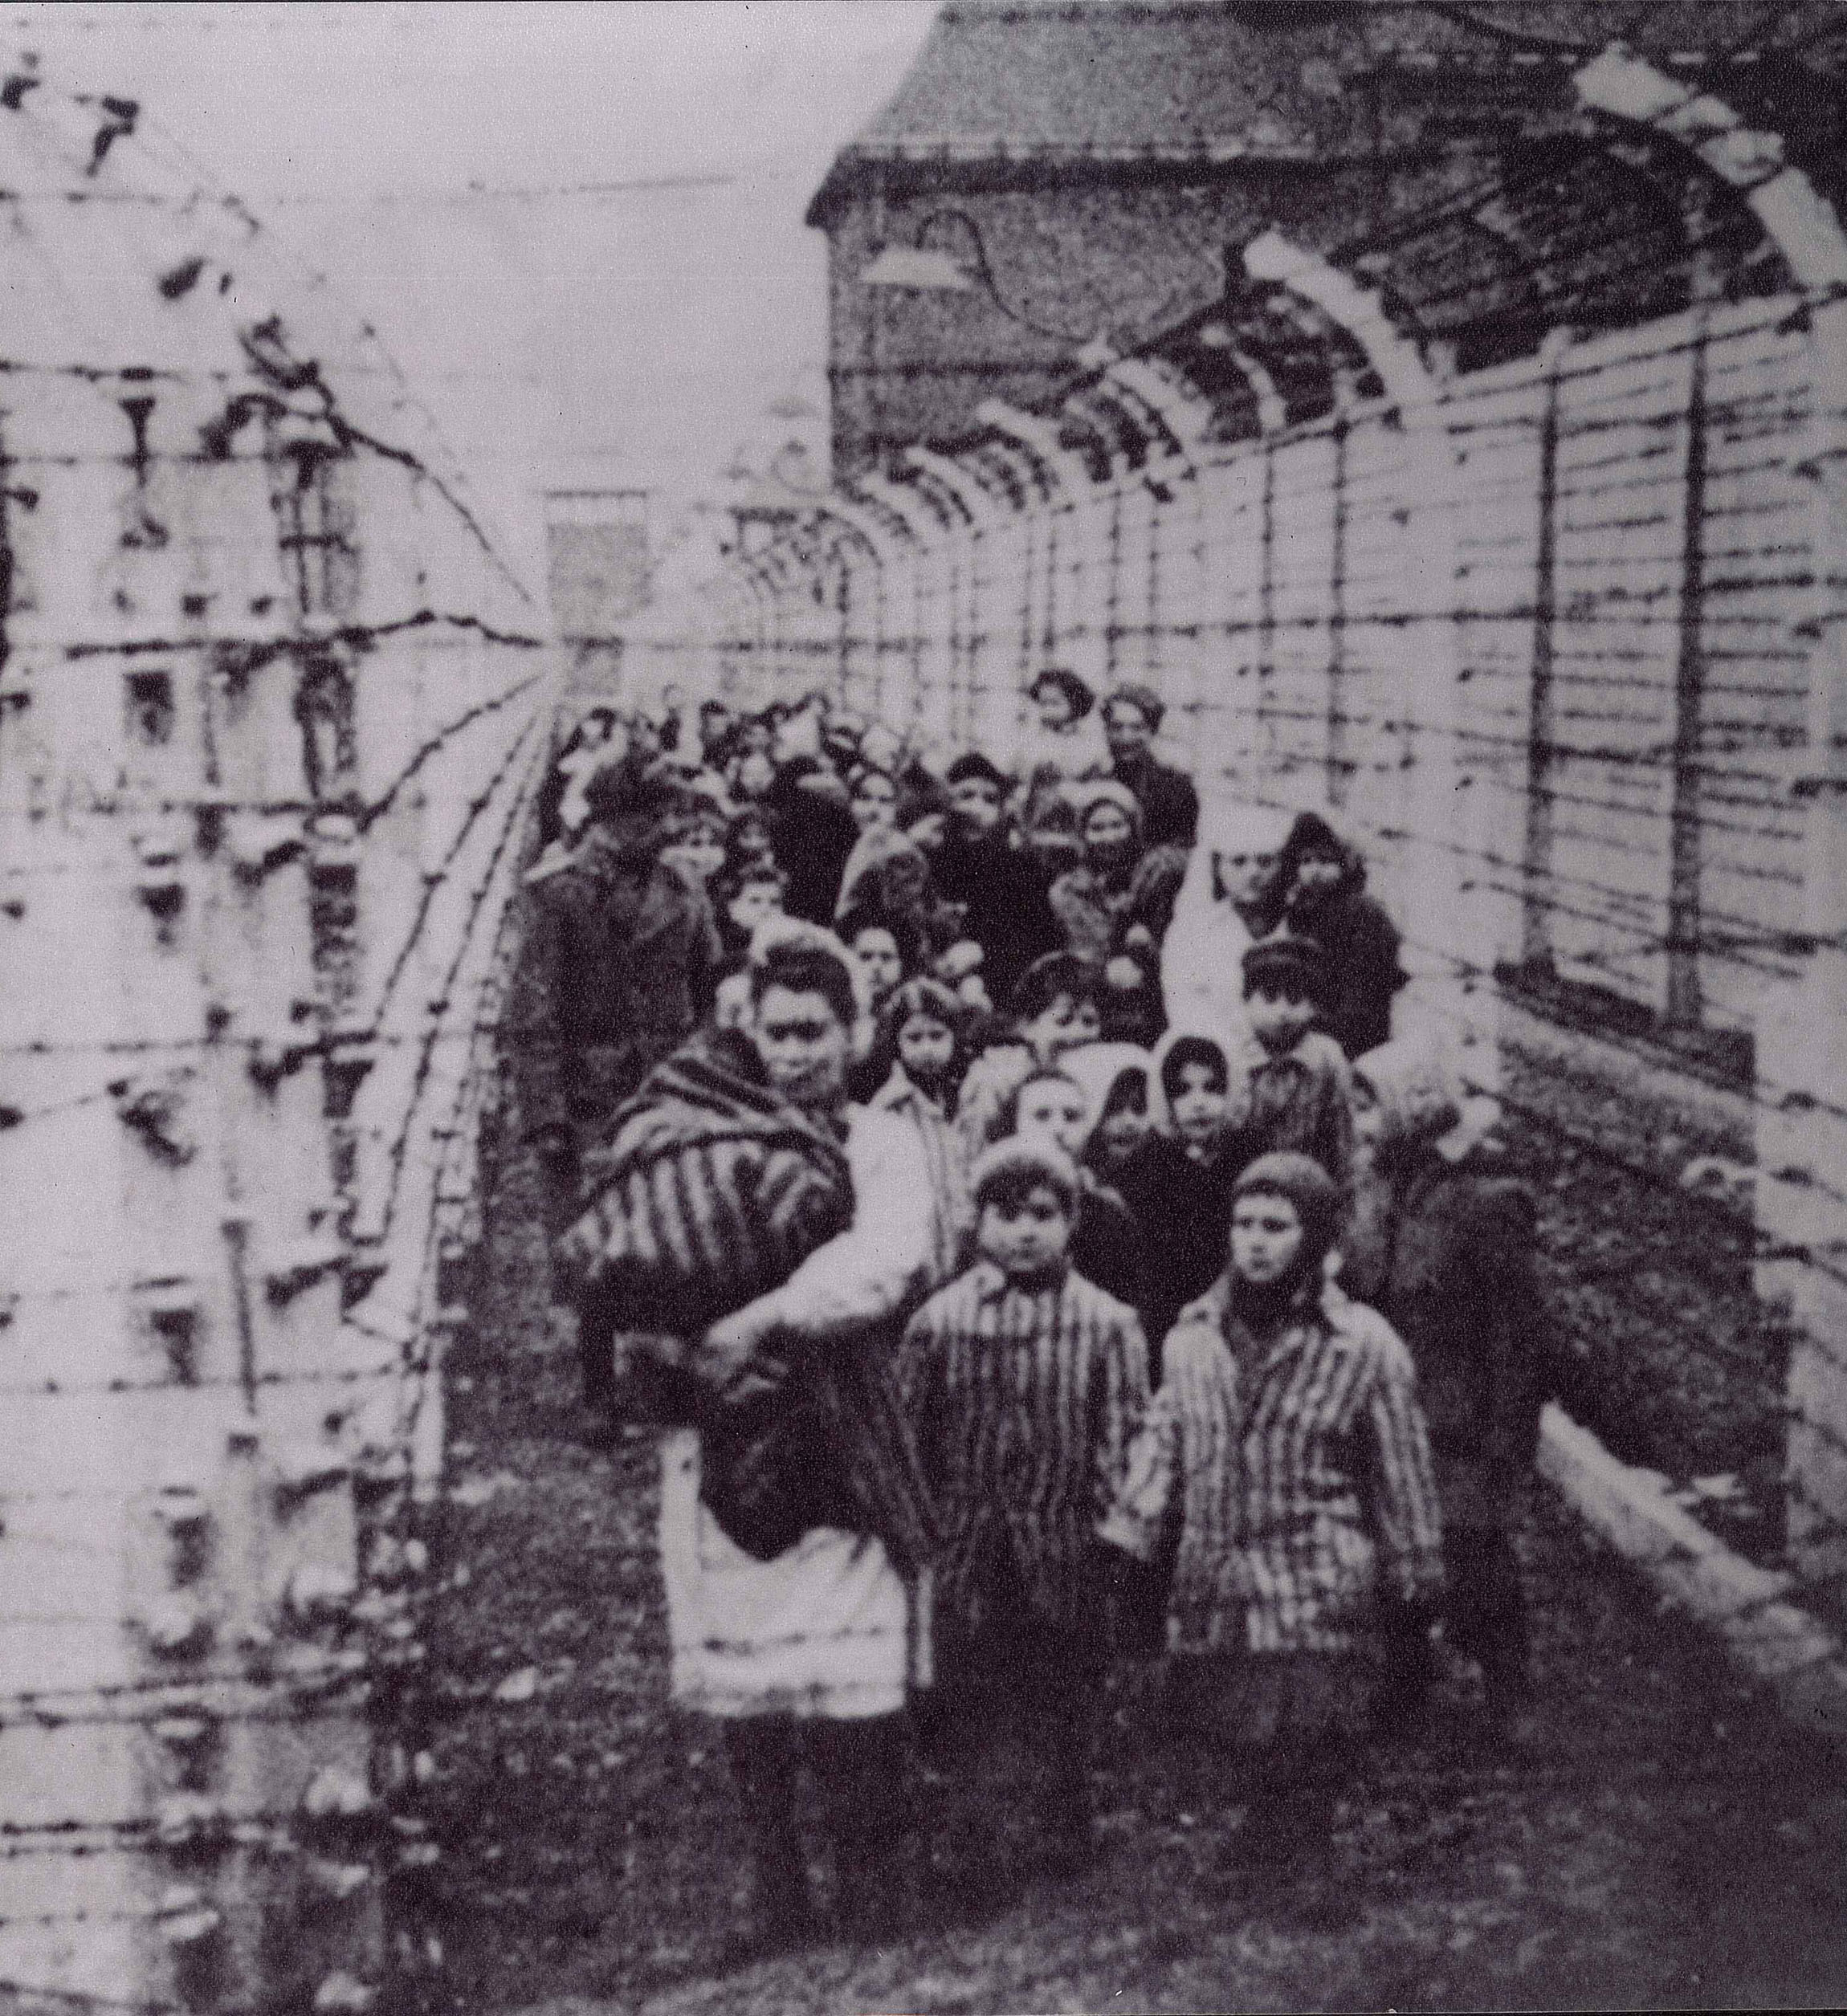 Auschwitz liberation photo